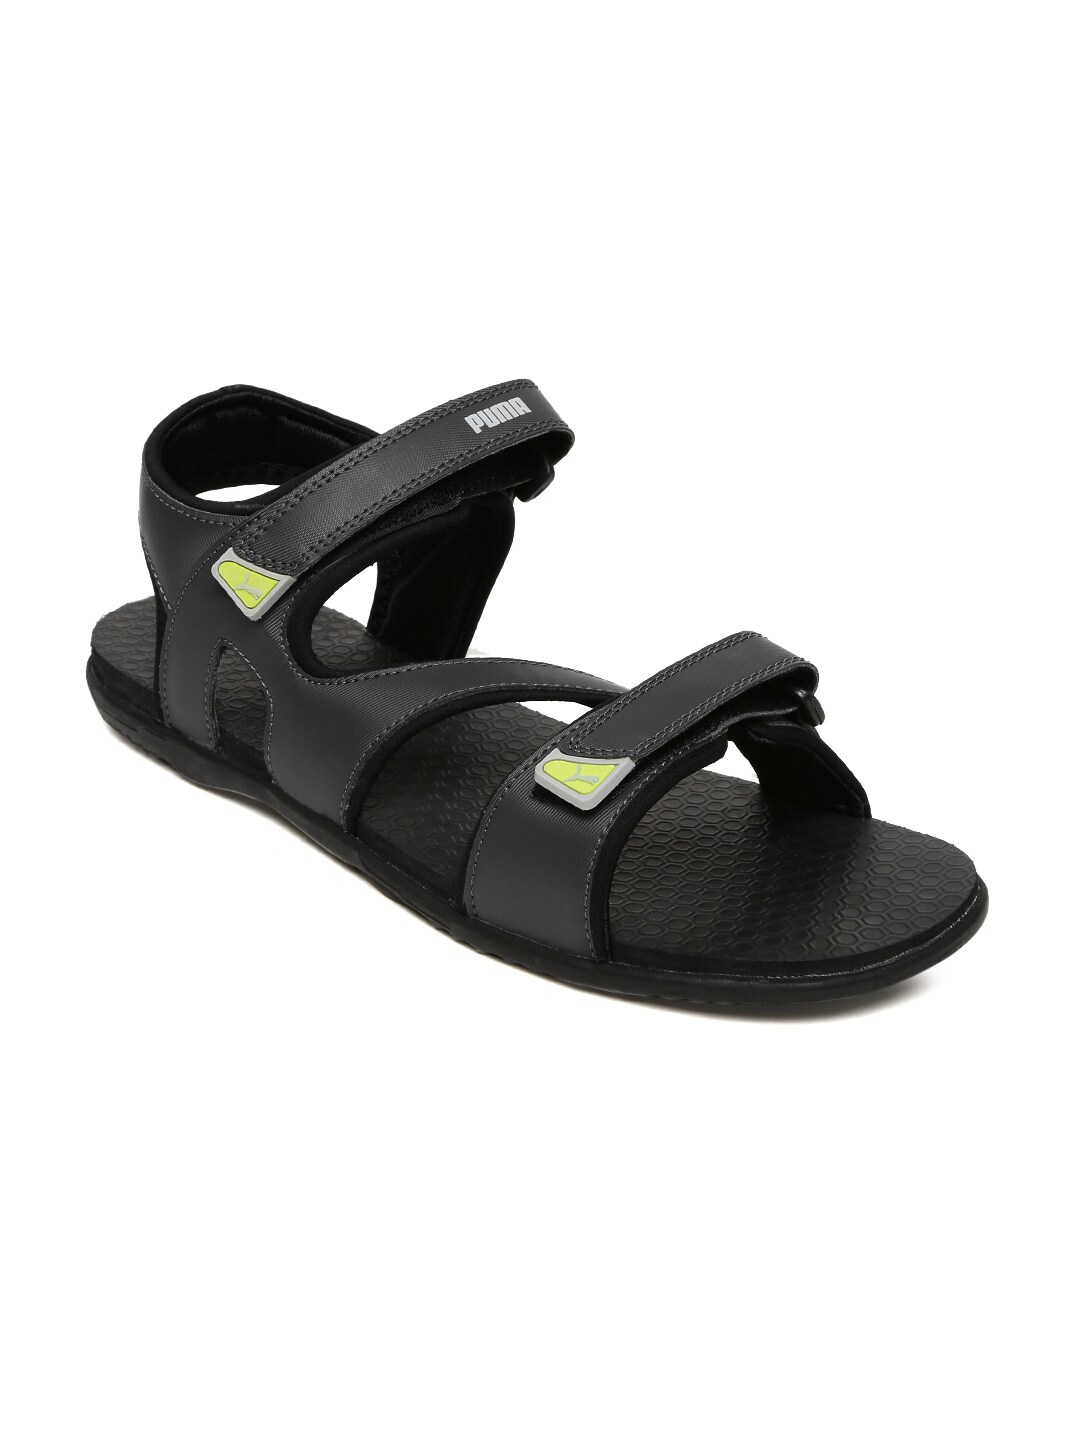 931be39ad22 Buy sandals for men   OFF64% Discounted